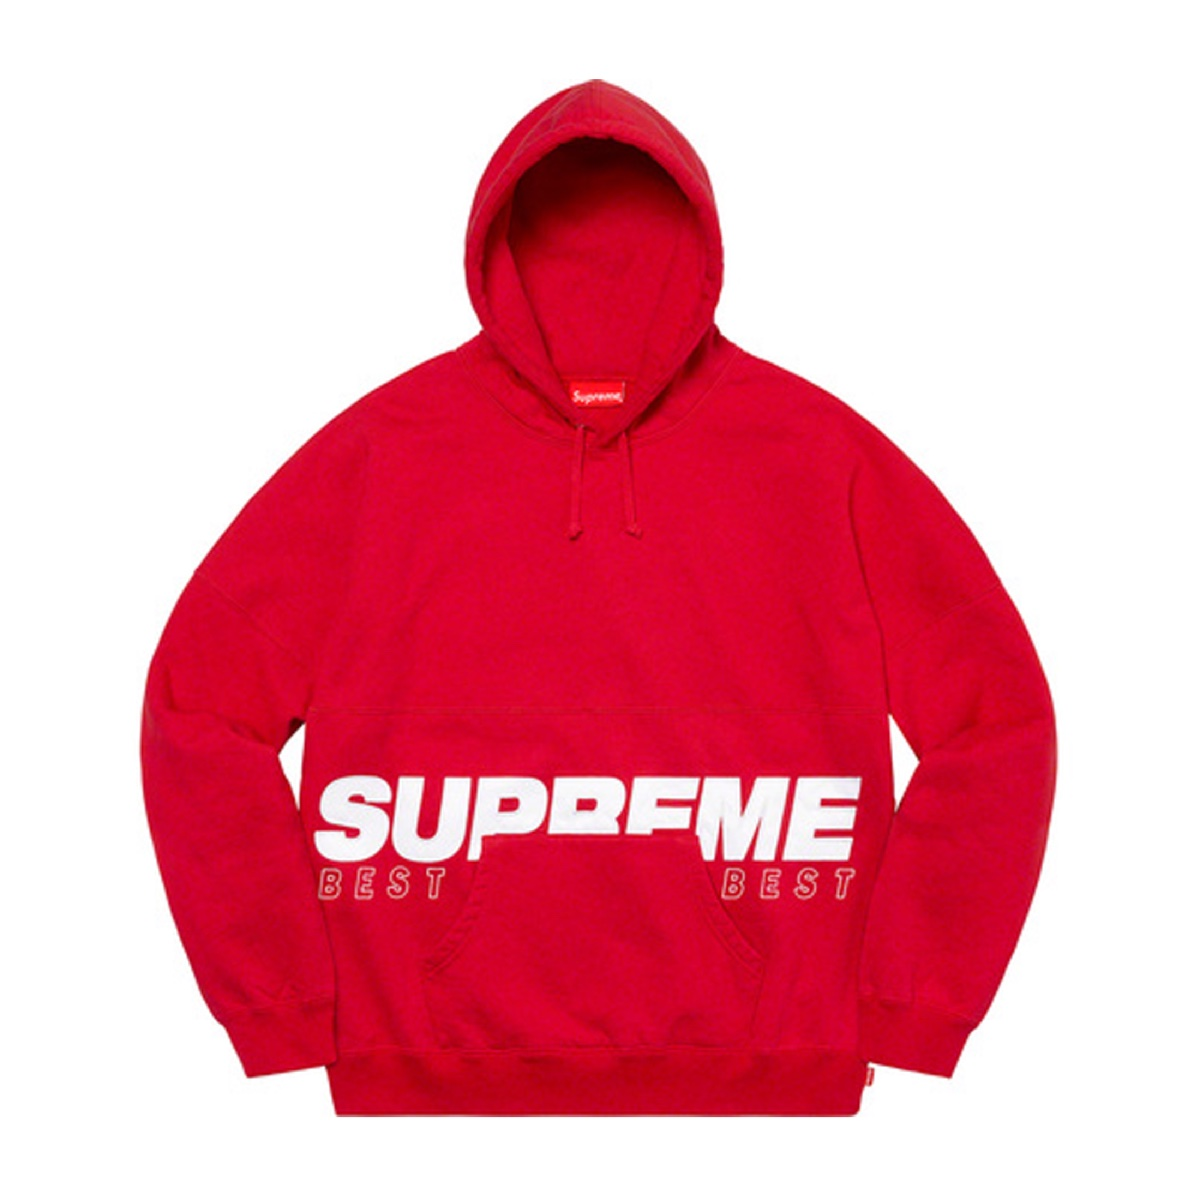 Supreme Best Of The Best Hooded Sweatshirt Red